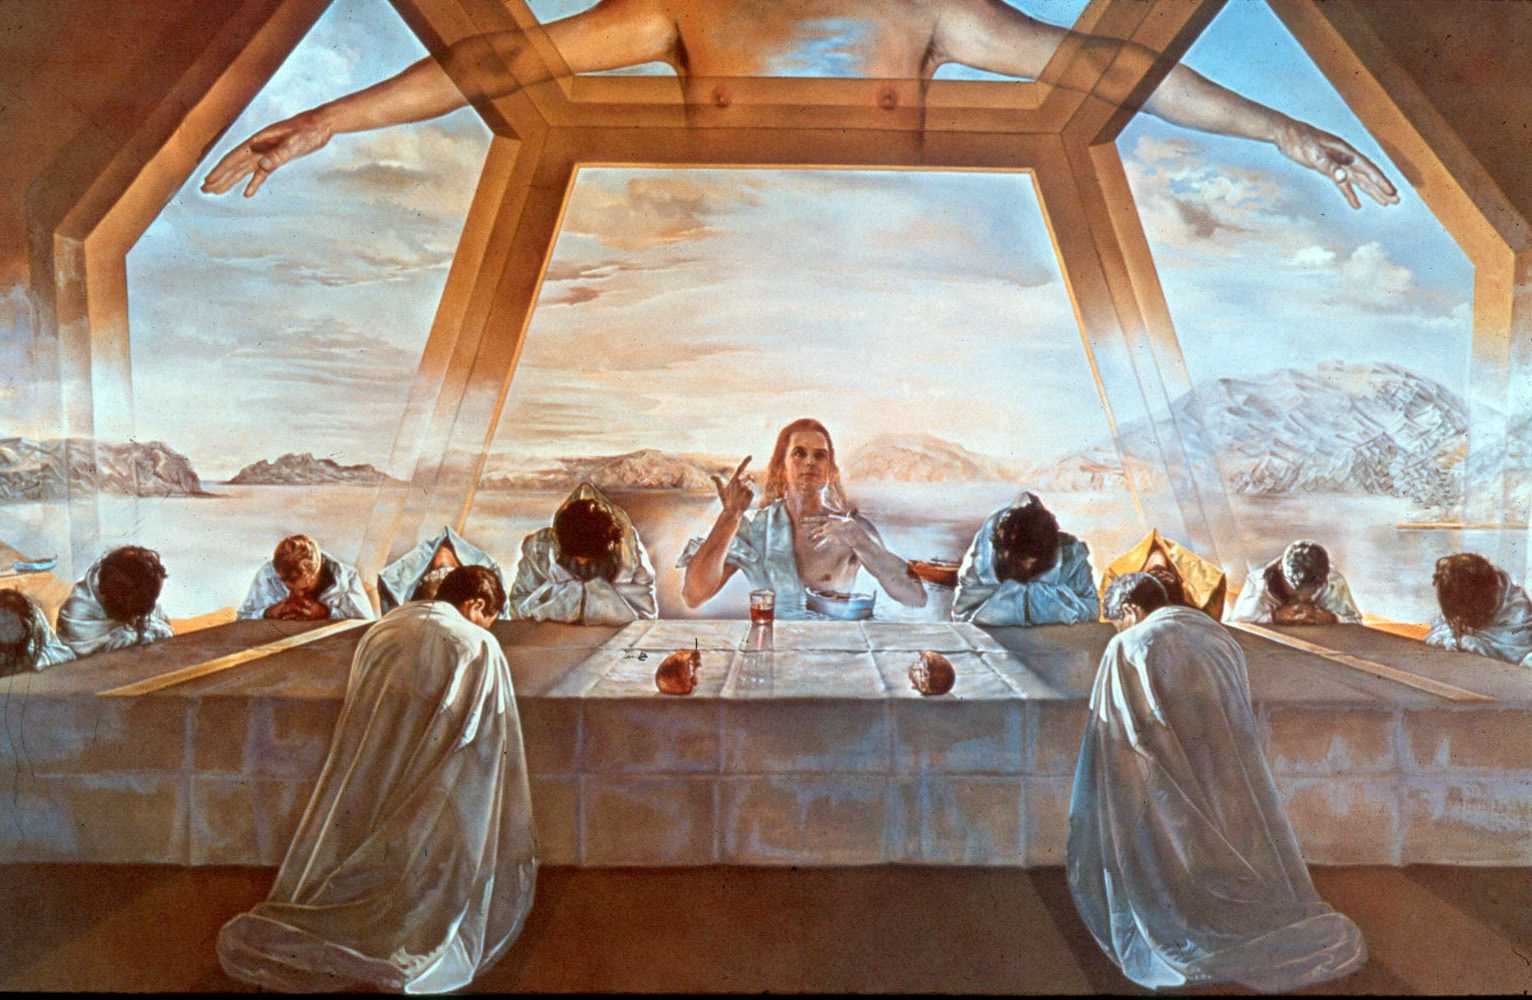 dali-sacrament-of-the-last-supper-1955